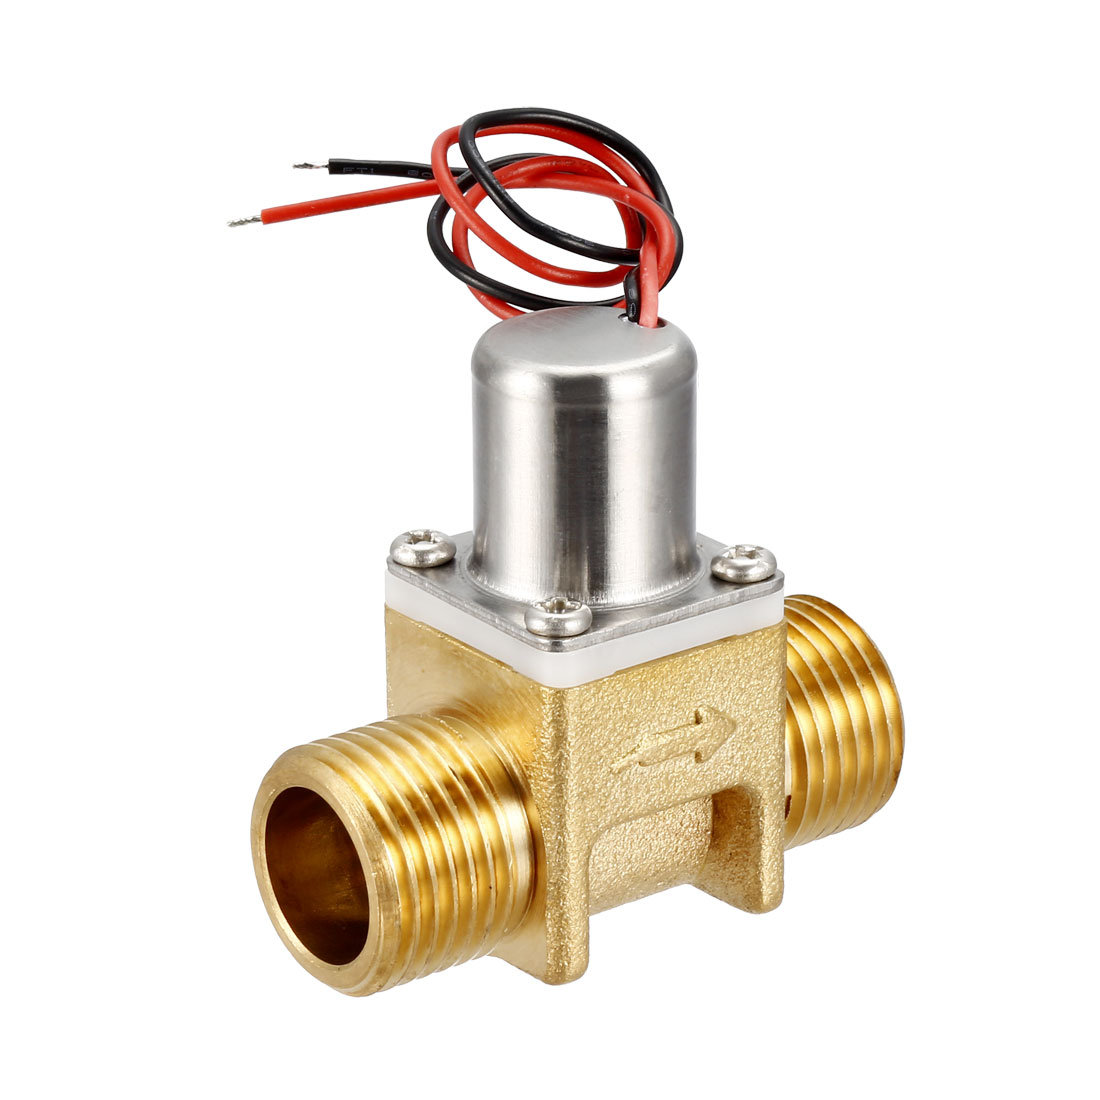 Pulse Solenoid Valve G1/2 DC3.6V Copper Male Thread Valves with Filter